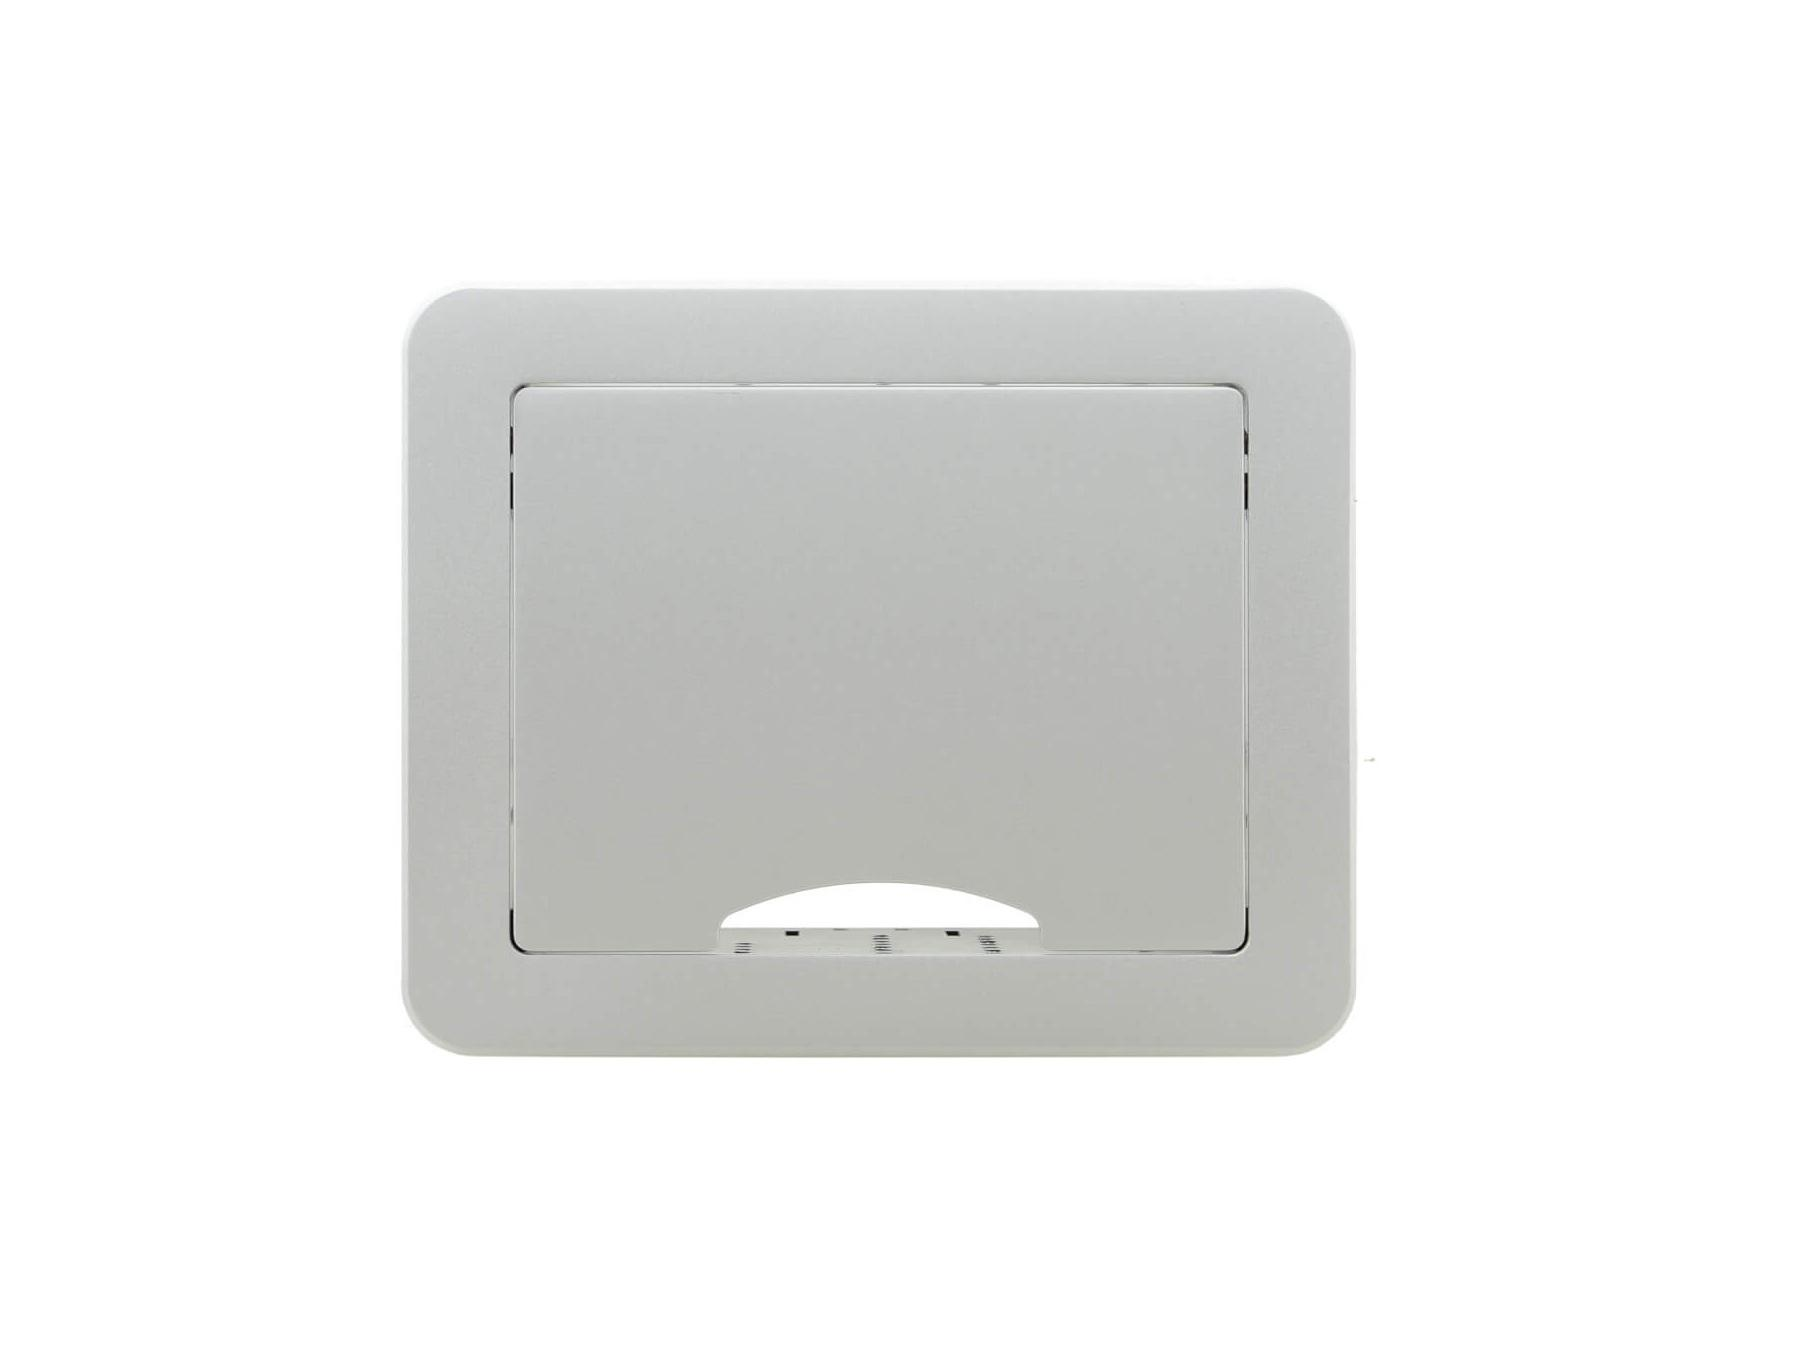 TBUS-1Axl(BC) Table Mount Modular Multi-Connection Solution/Brushed Clear by Kramer